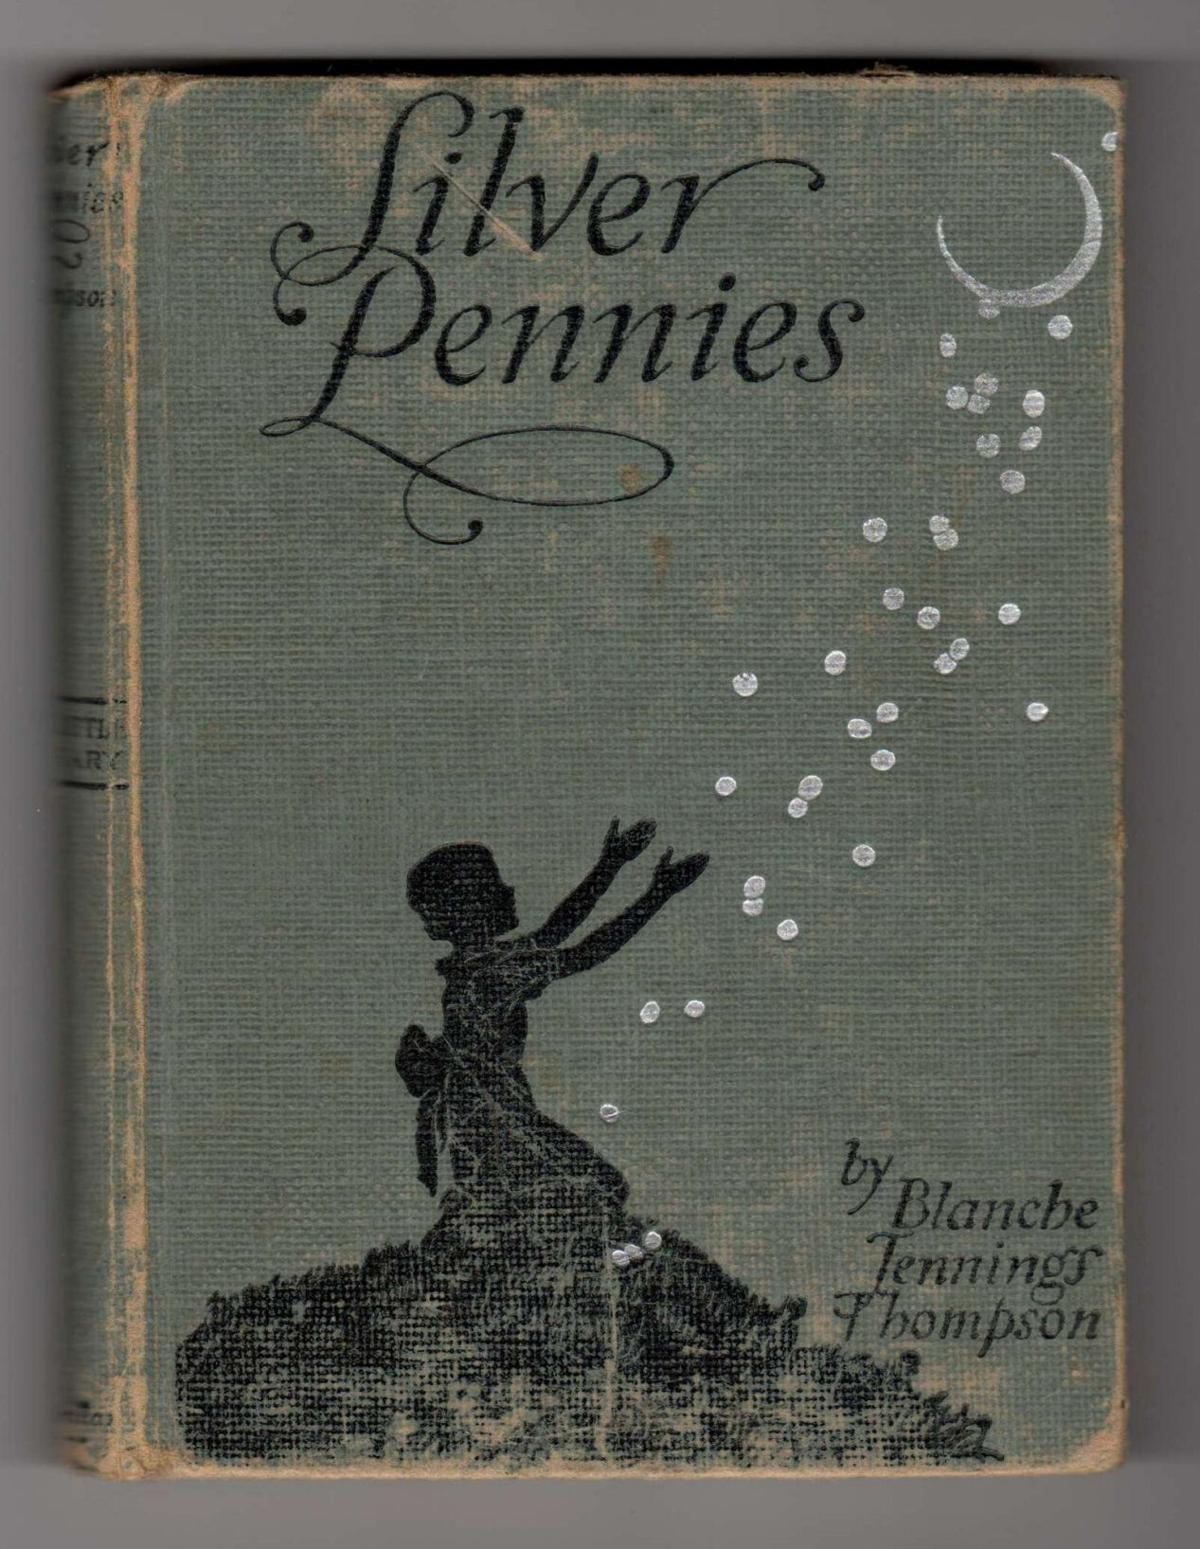 Geneseo writer's holiday gift was 'Silver Pennies'